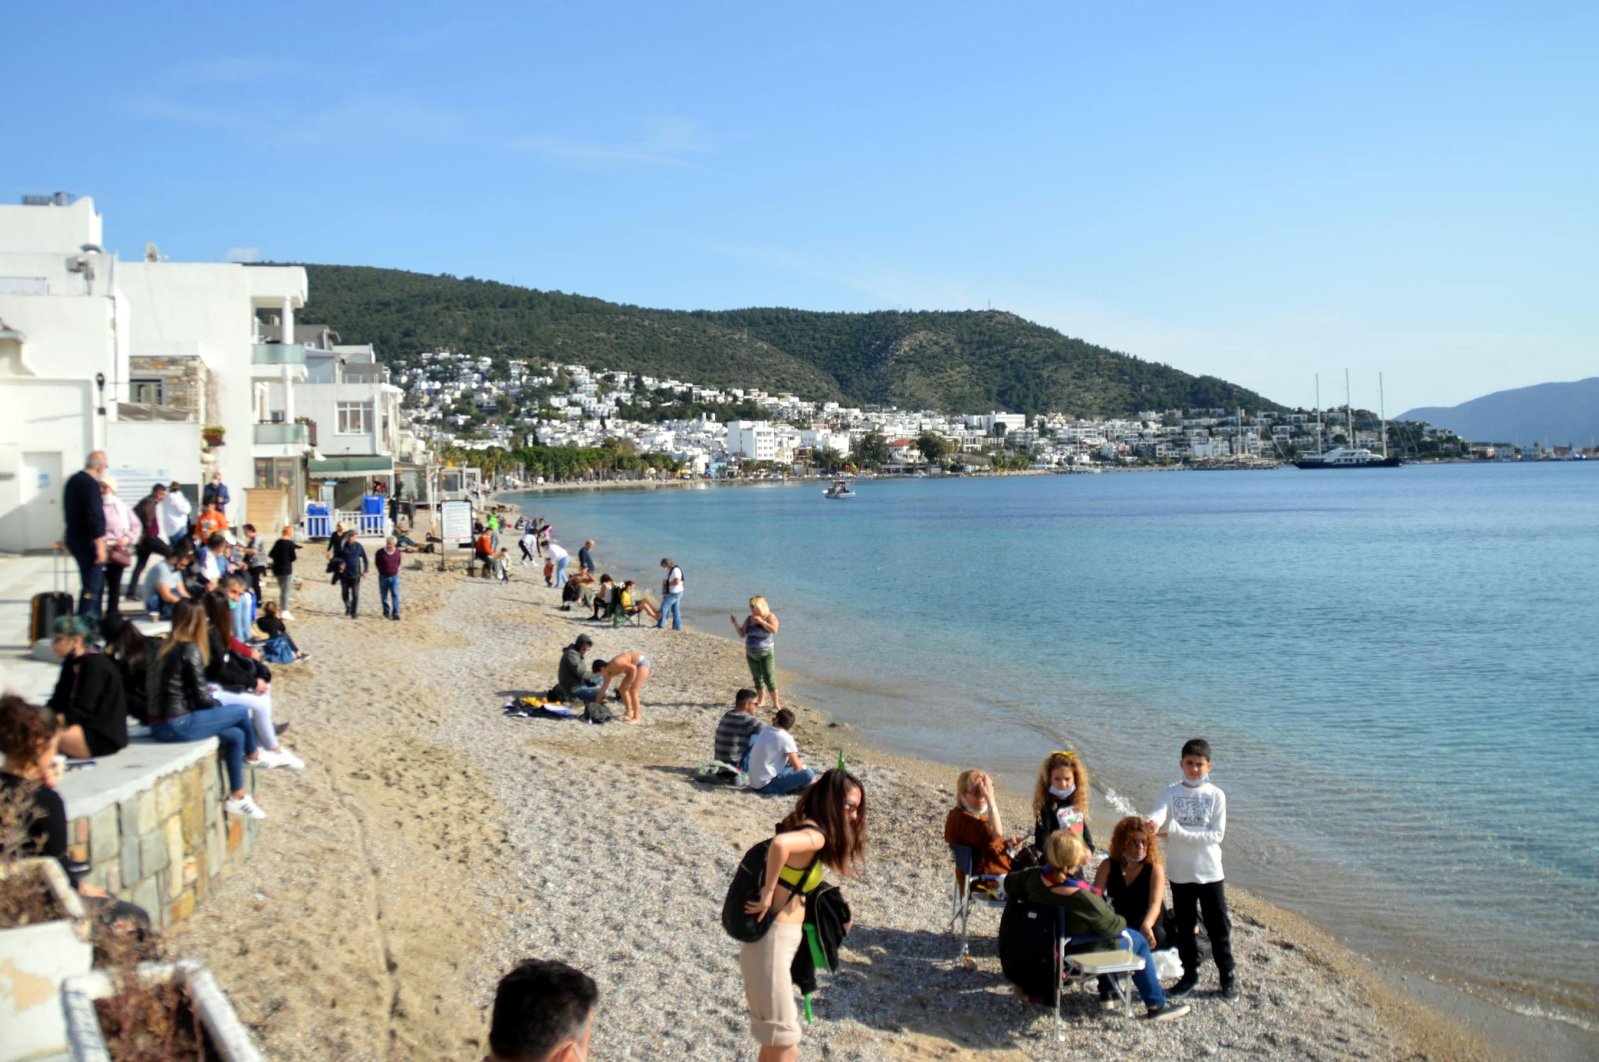 People are seen on a beach in thesouthwestern resort town of Bodrum, Muğla province, Turkey, Feb. 4, 2021. (DHA Photo)